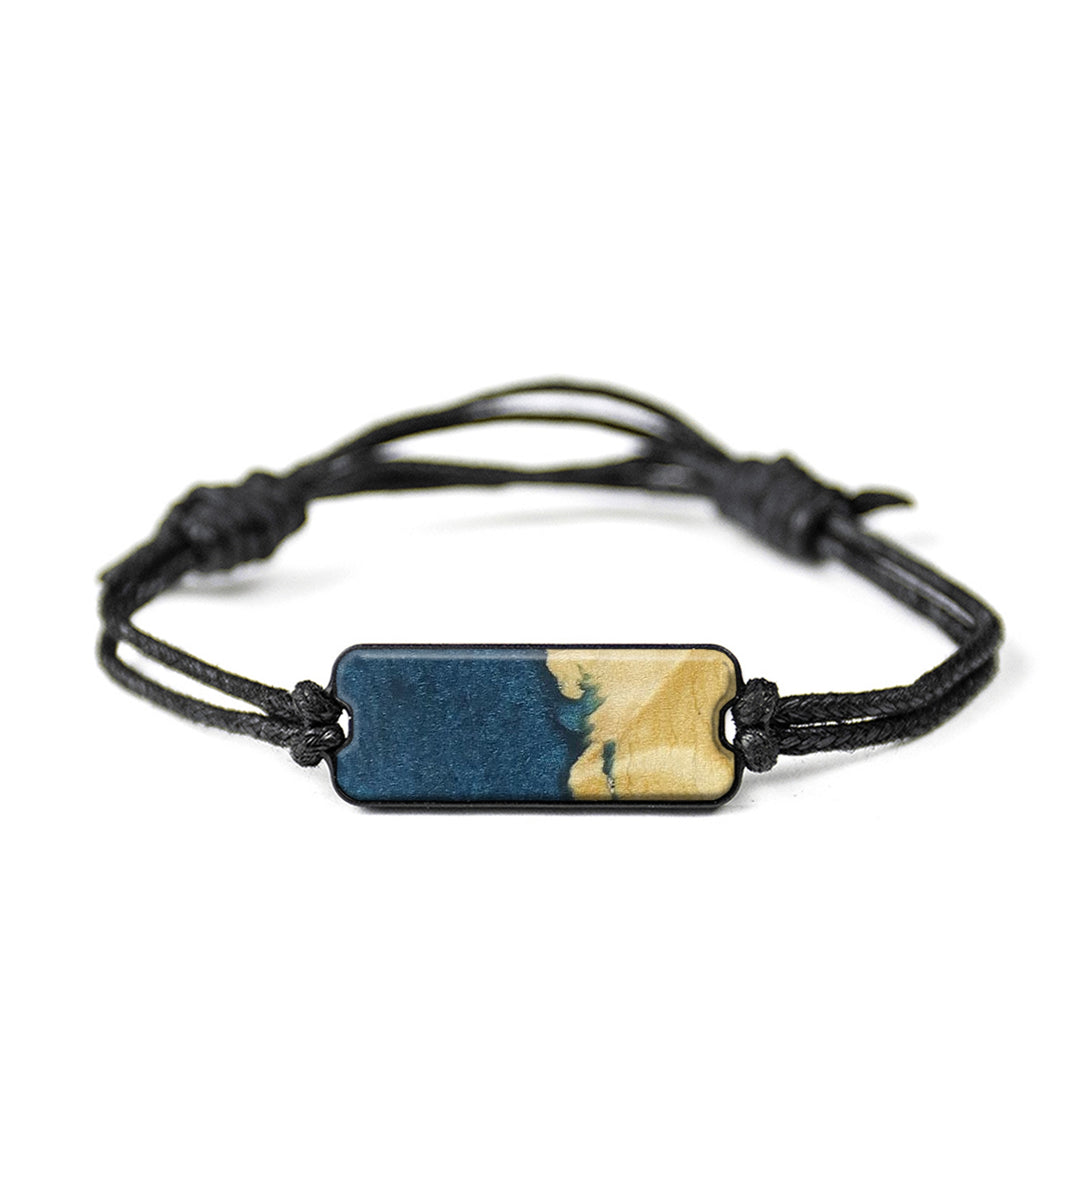 Classic Wood+Resin Bracelet - Yolande (Dark Blue, 423193)